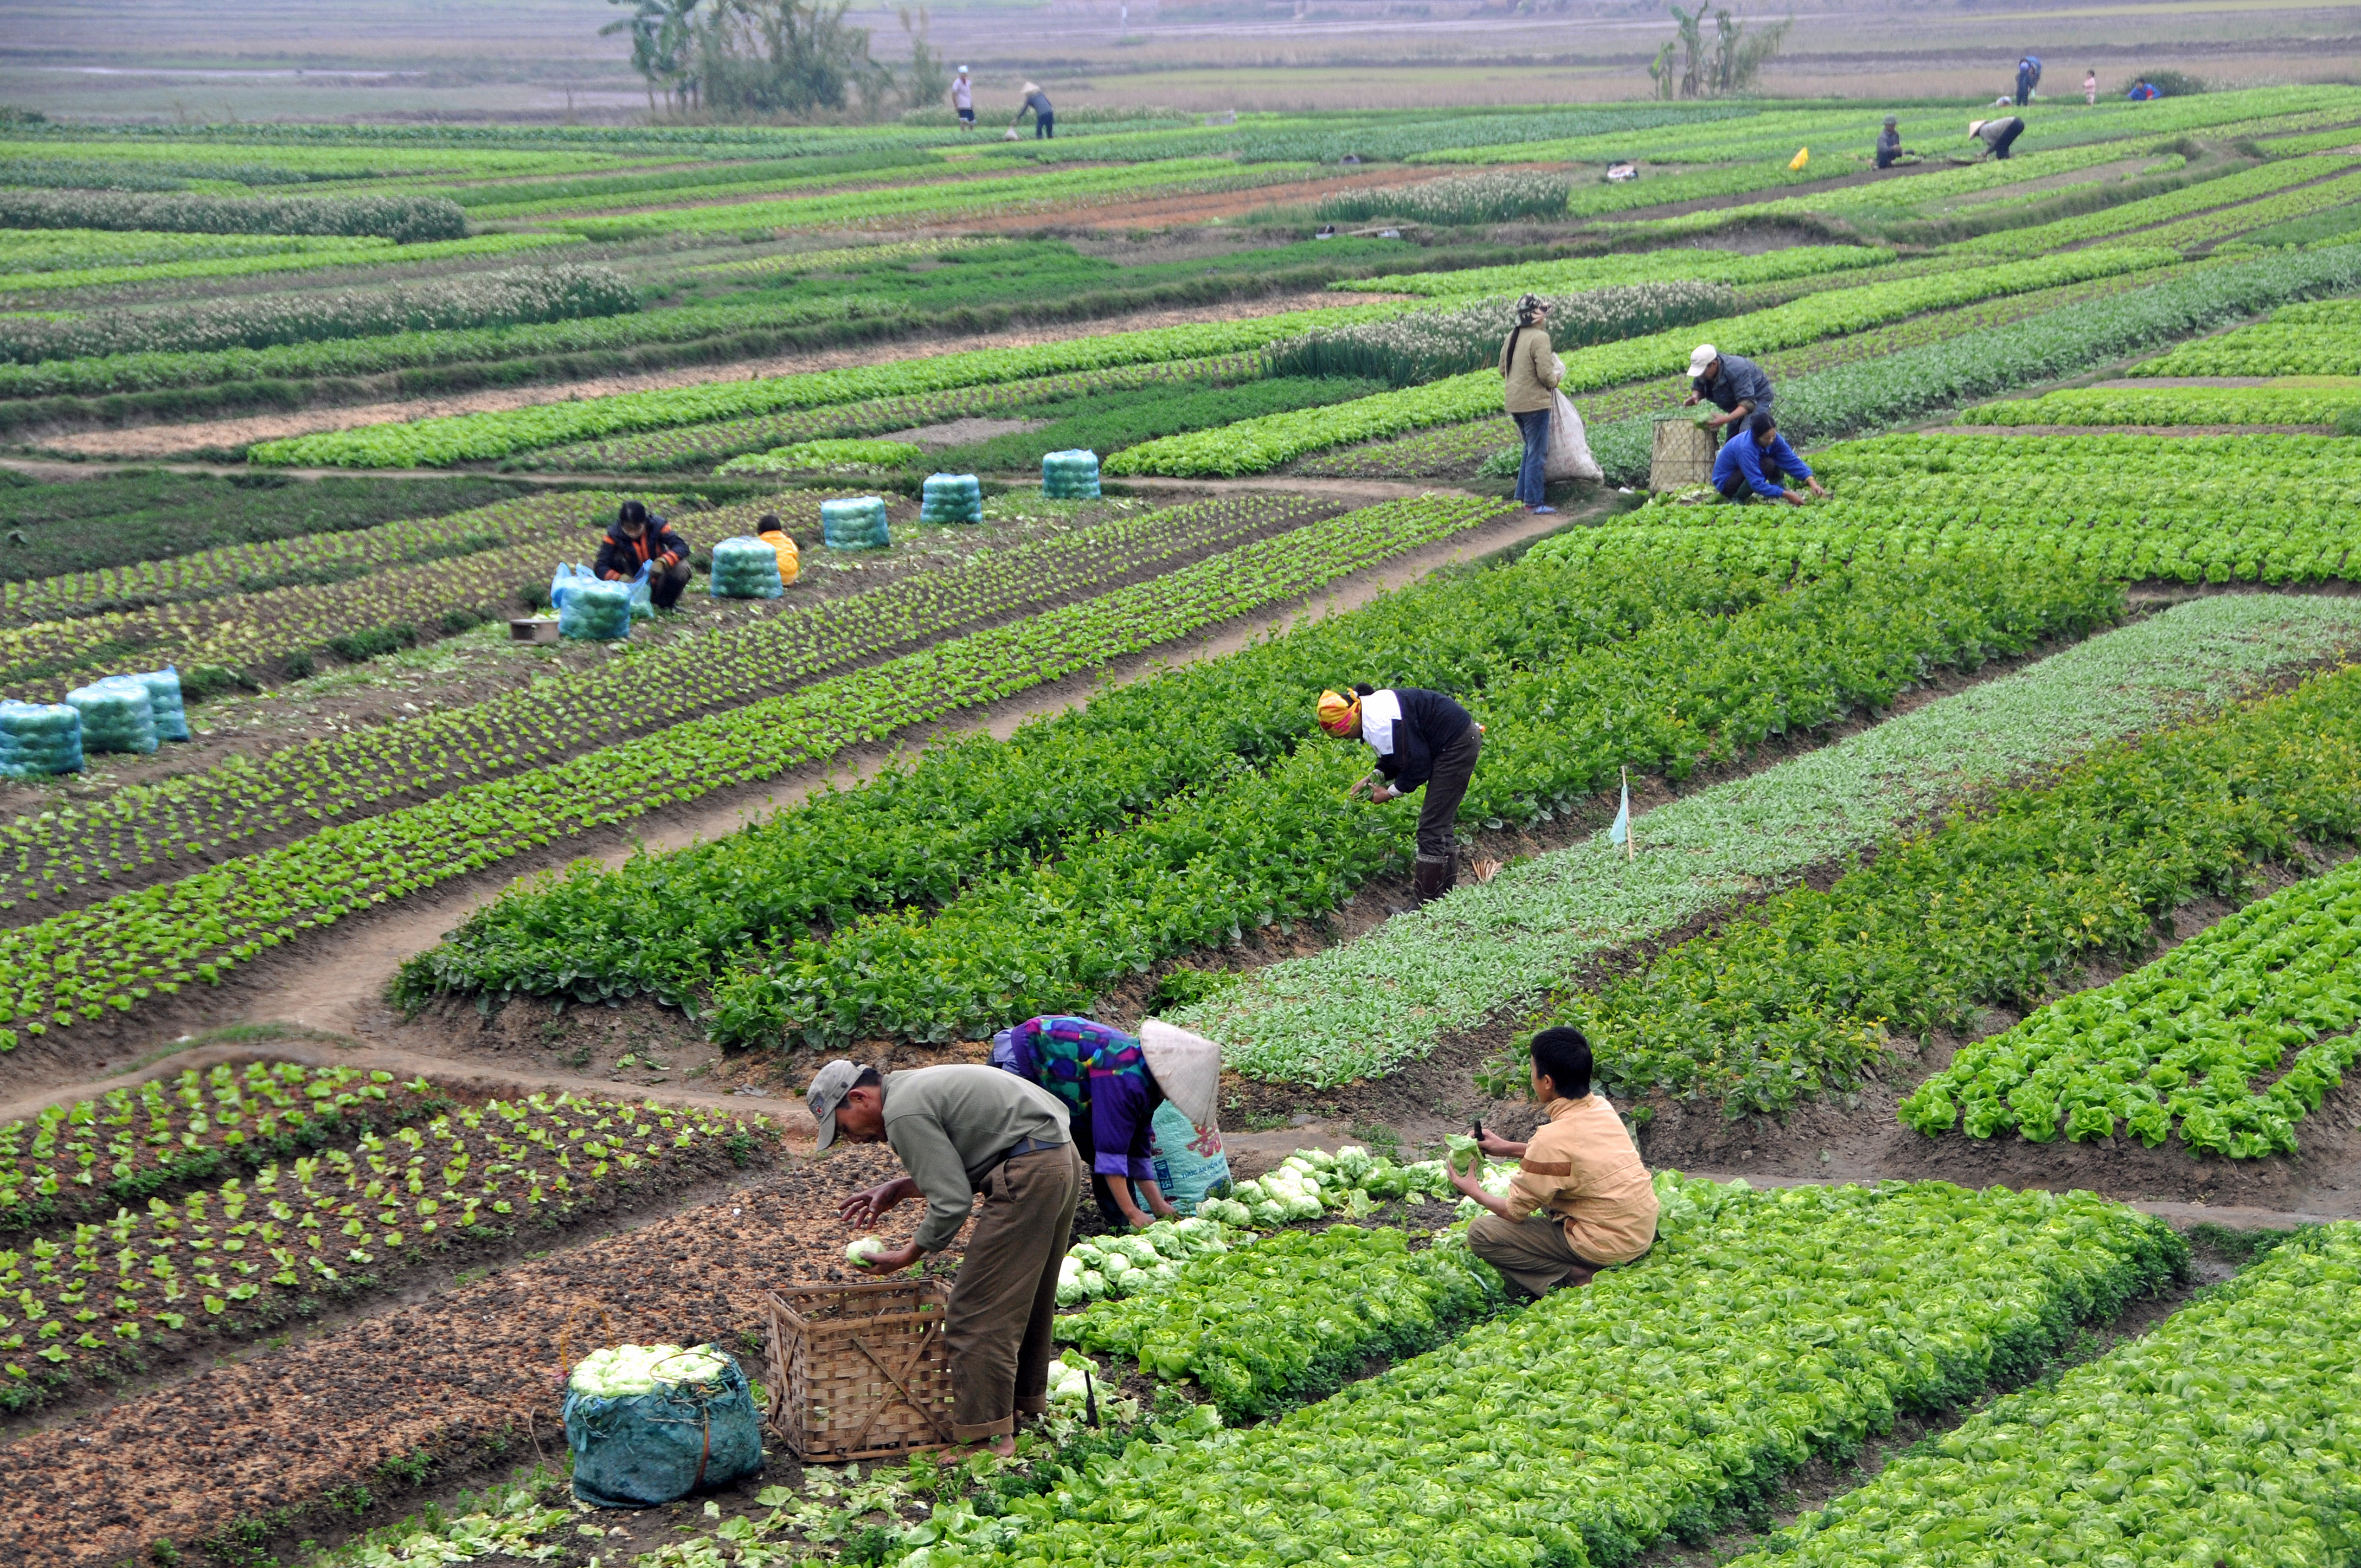 https://i2.wp.com/upload.wikimedia.org/wikipedia/commons/4/4f/Agriculture_in_Vietnam_with_farmers.jpg